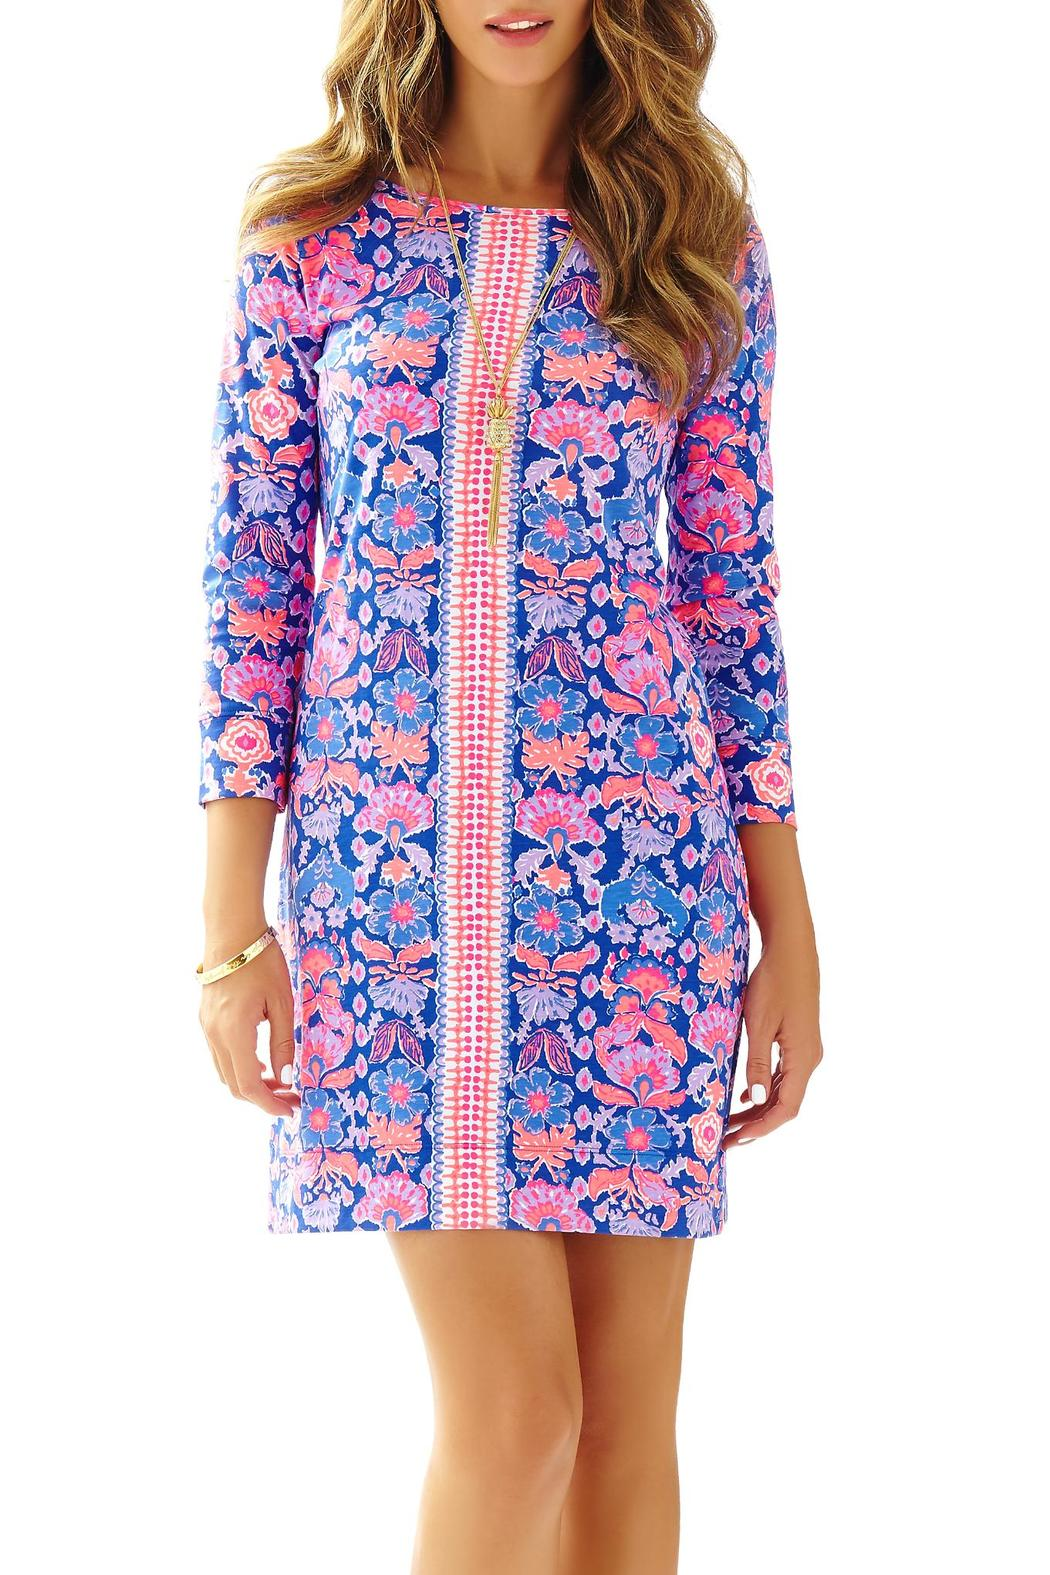 Lilly Pulitzer Marlowe Boatneck T Shirt Dress From Connecticut By